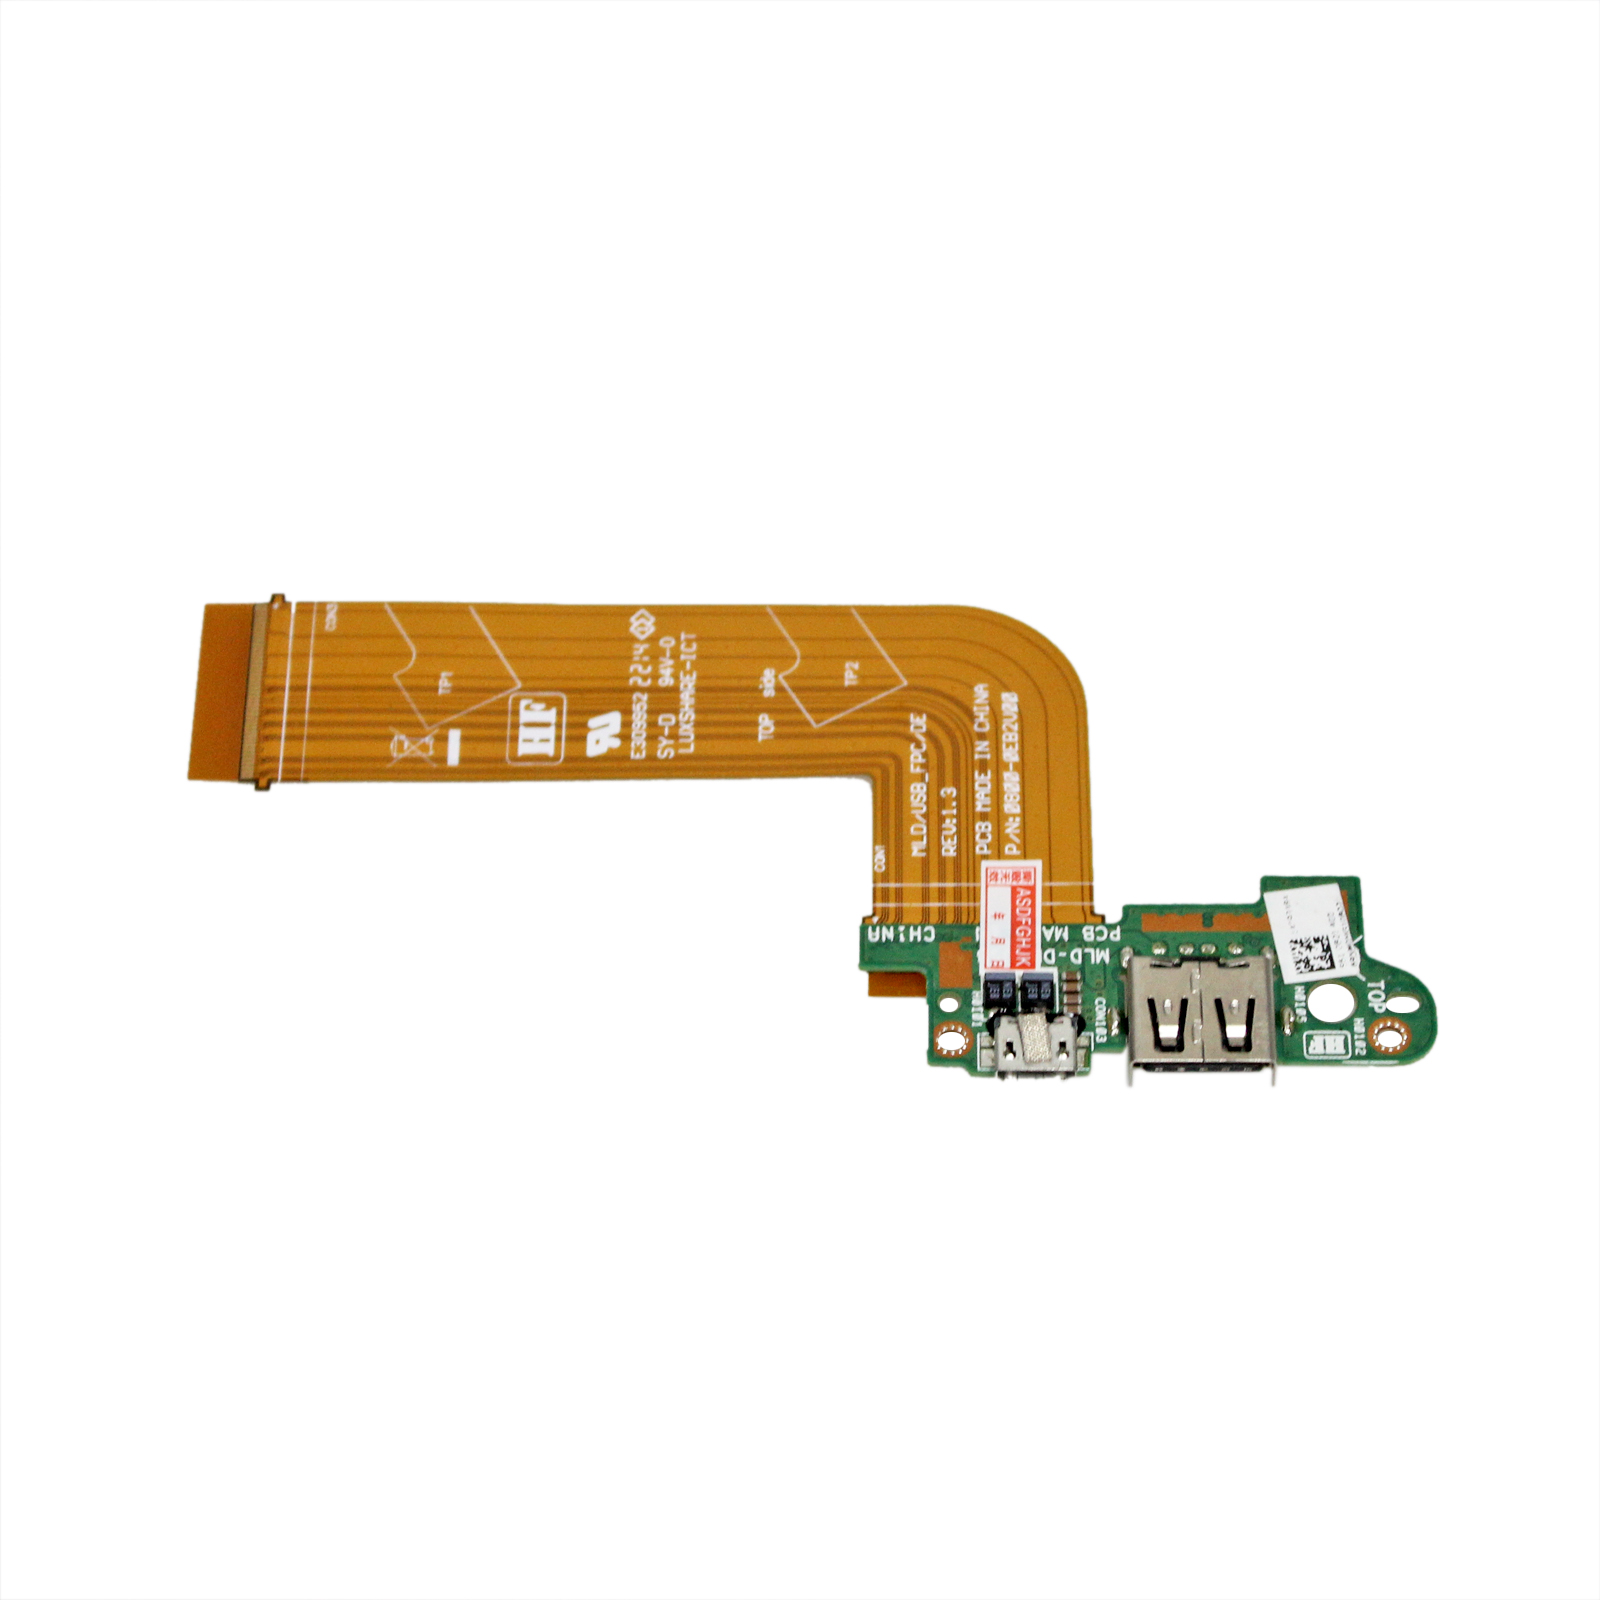 MLD-DB-USB Charge Port PCB Board FOR DELL VENUE 11 PRO T06G 5130 Tablet